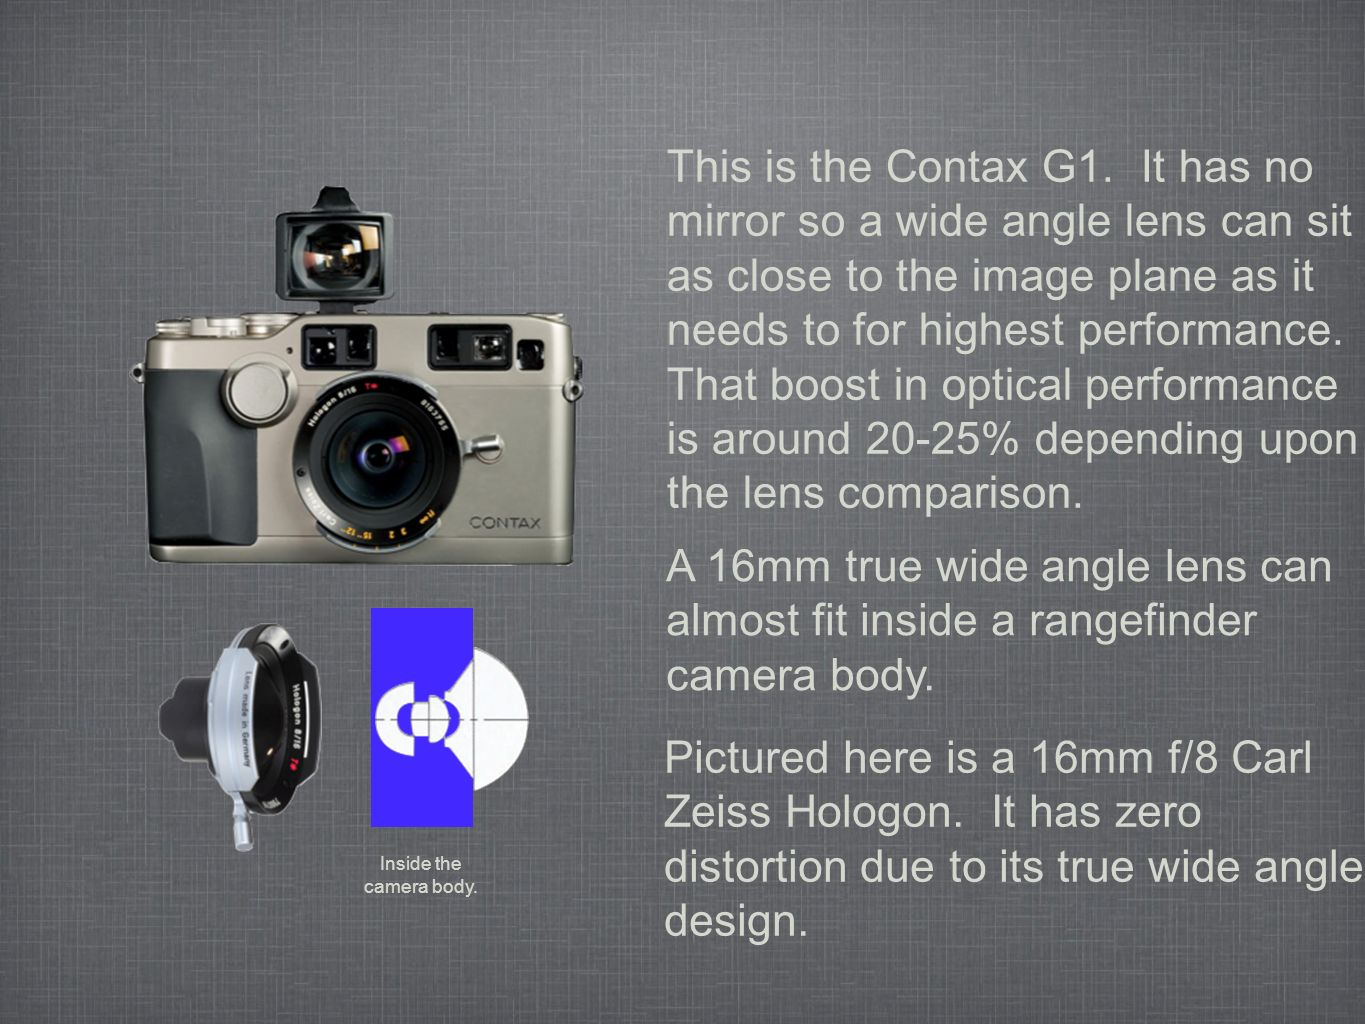 This is the Contax G1.